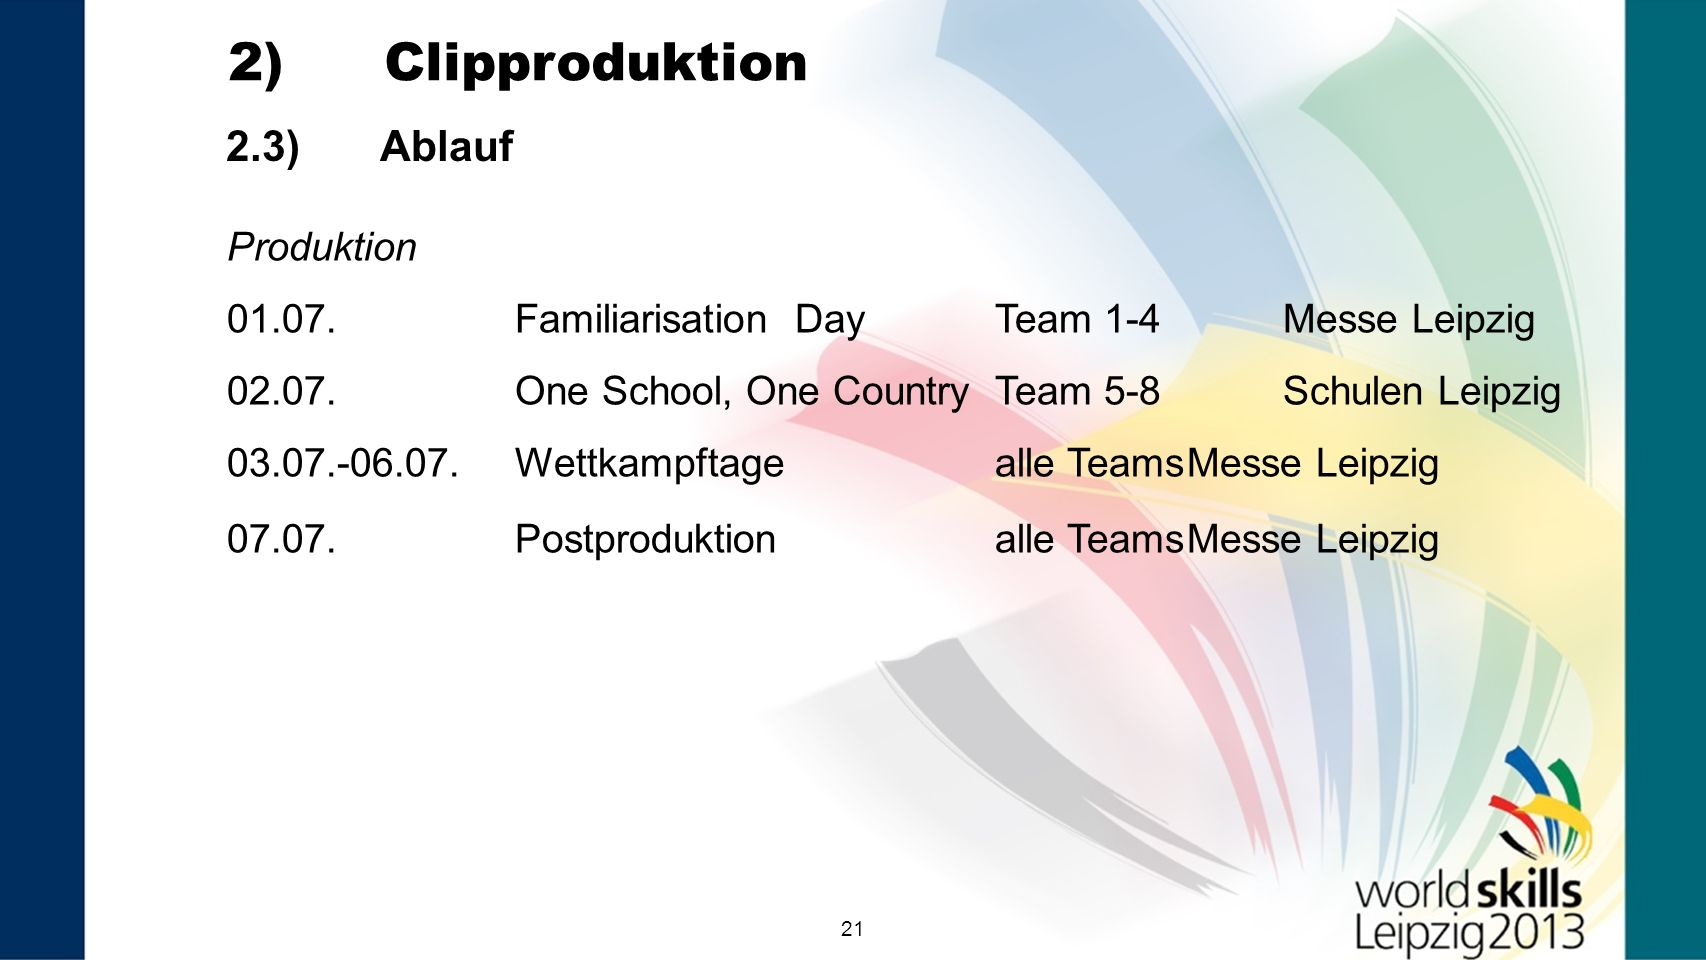 2) Clipproduktion 2.3) Ablauf Produktion